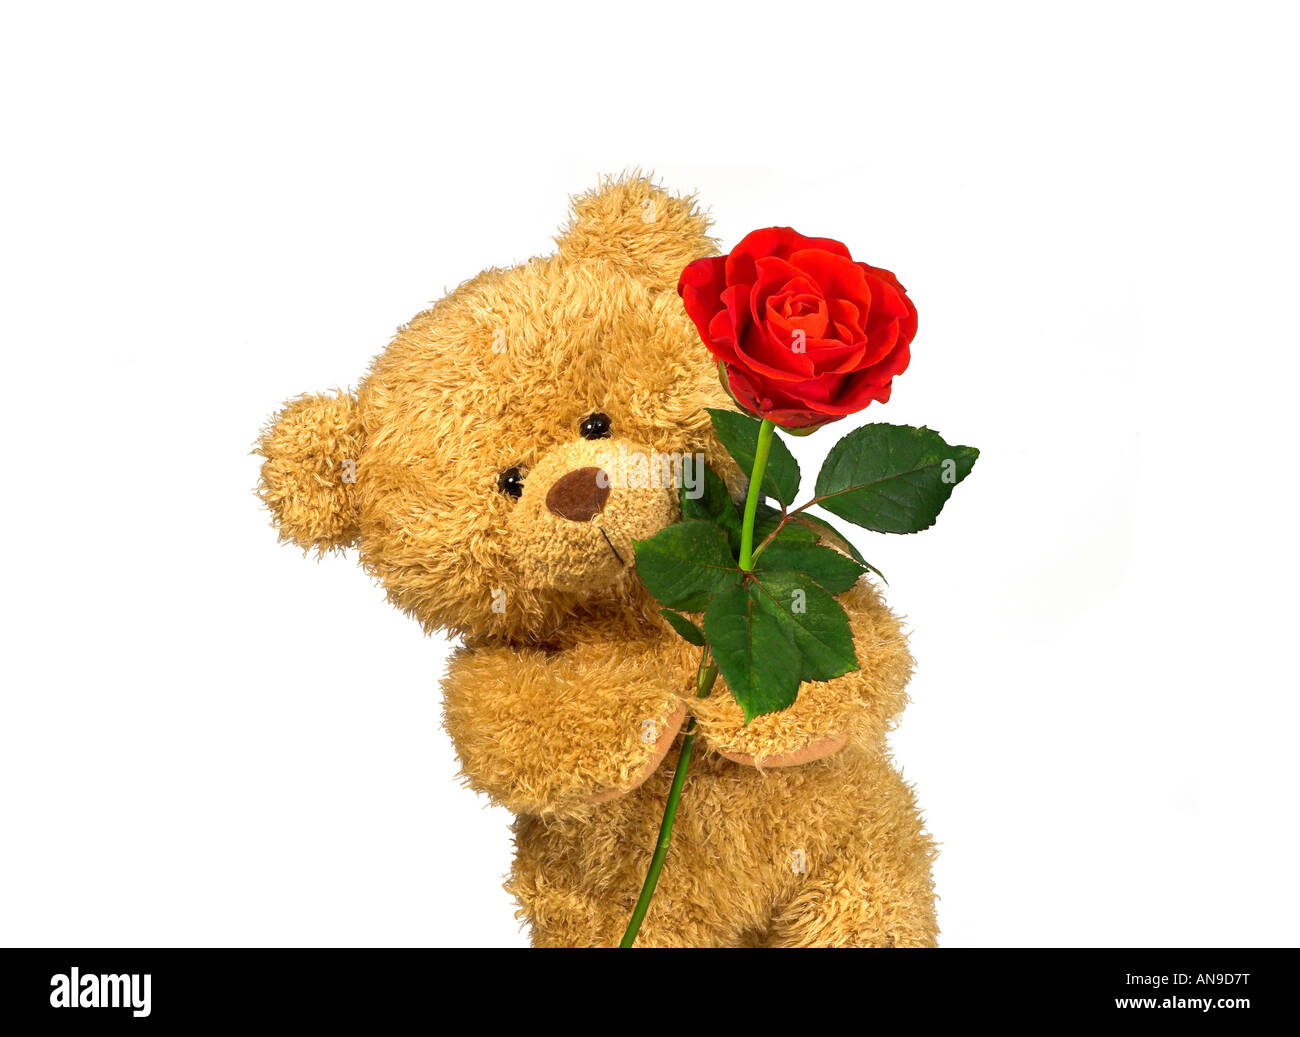 Teddy bear with red rose stock photo 15455531 alamy teddy bear with red rose izmirmasajfo